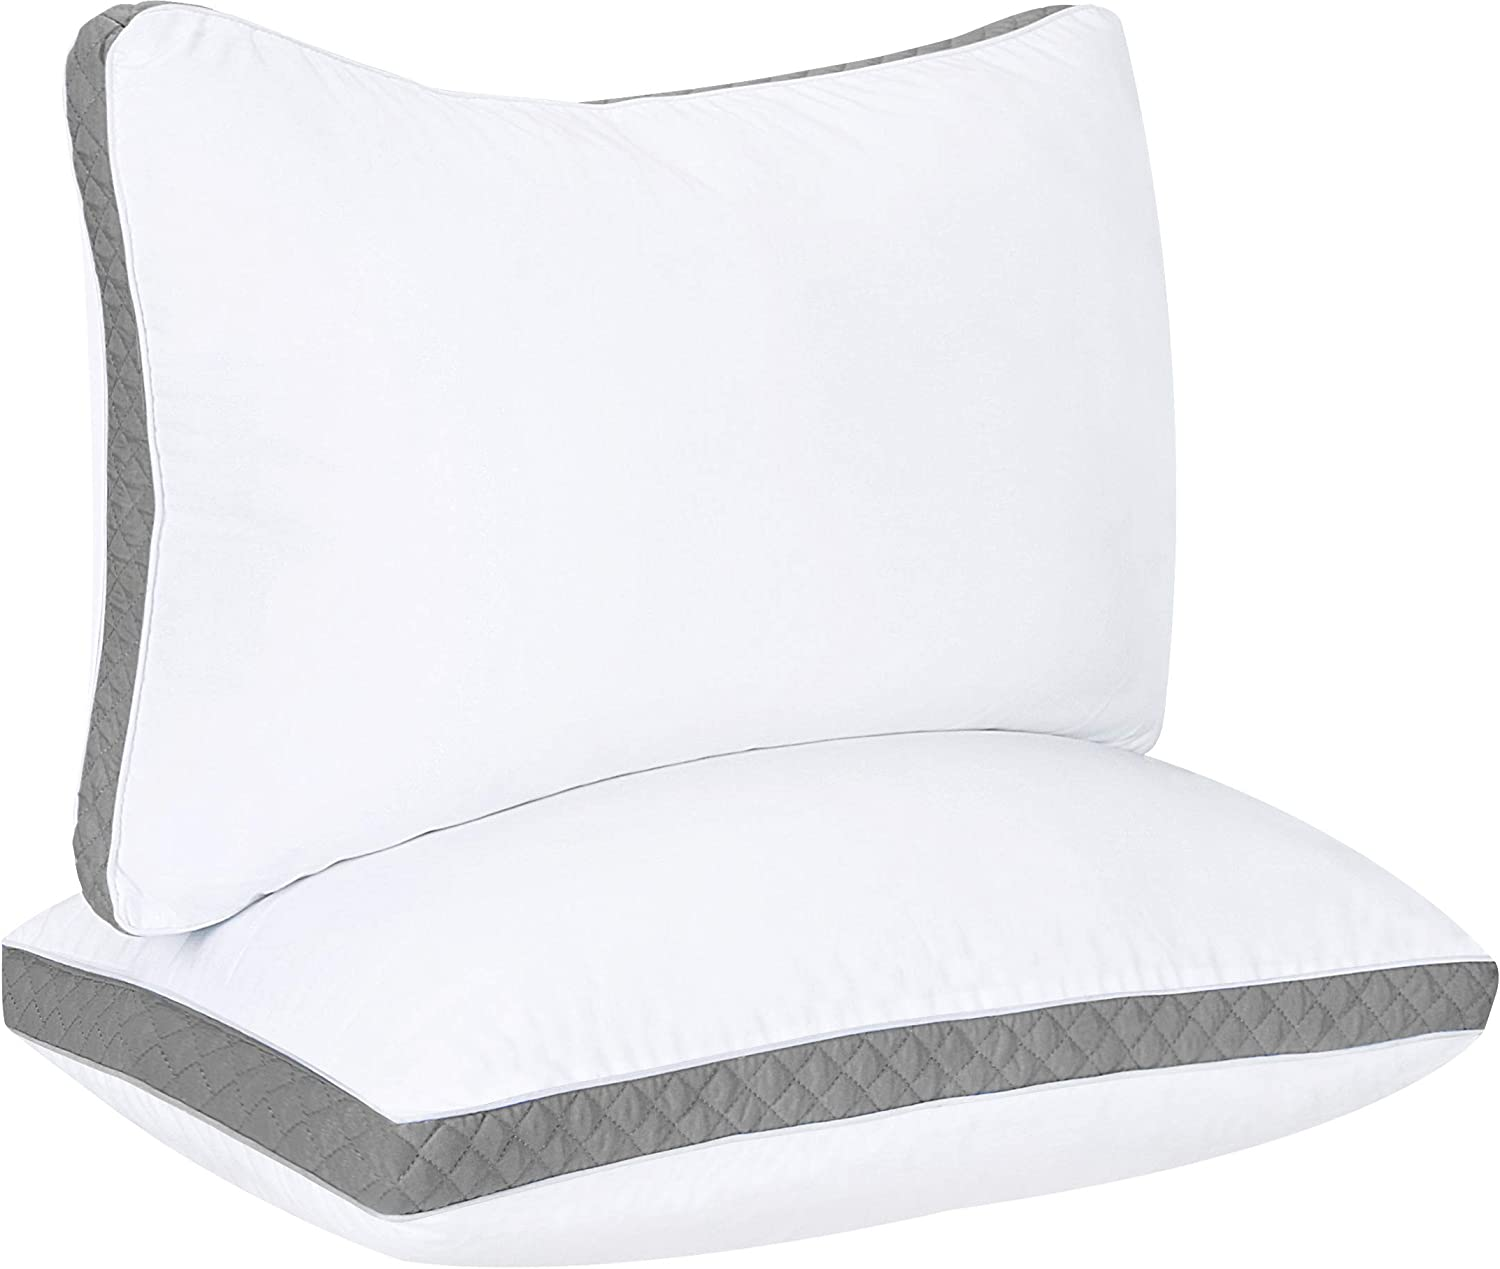 Best Gusseted Quilted Pillow For side and back sleepers review. Best Side back sleeper pillow.